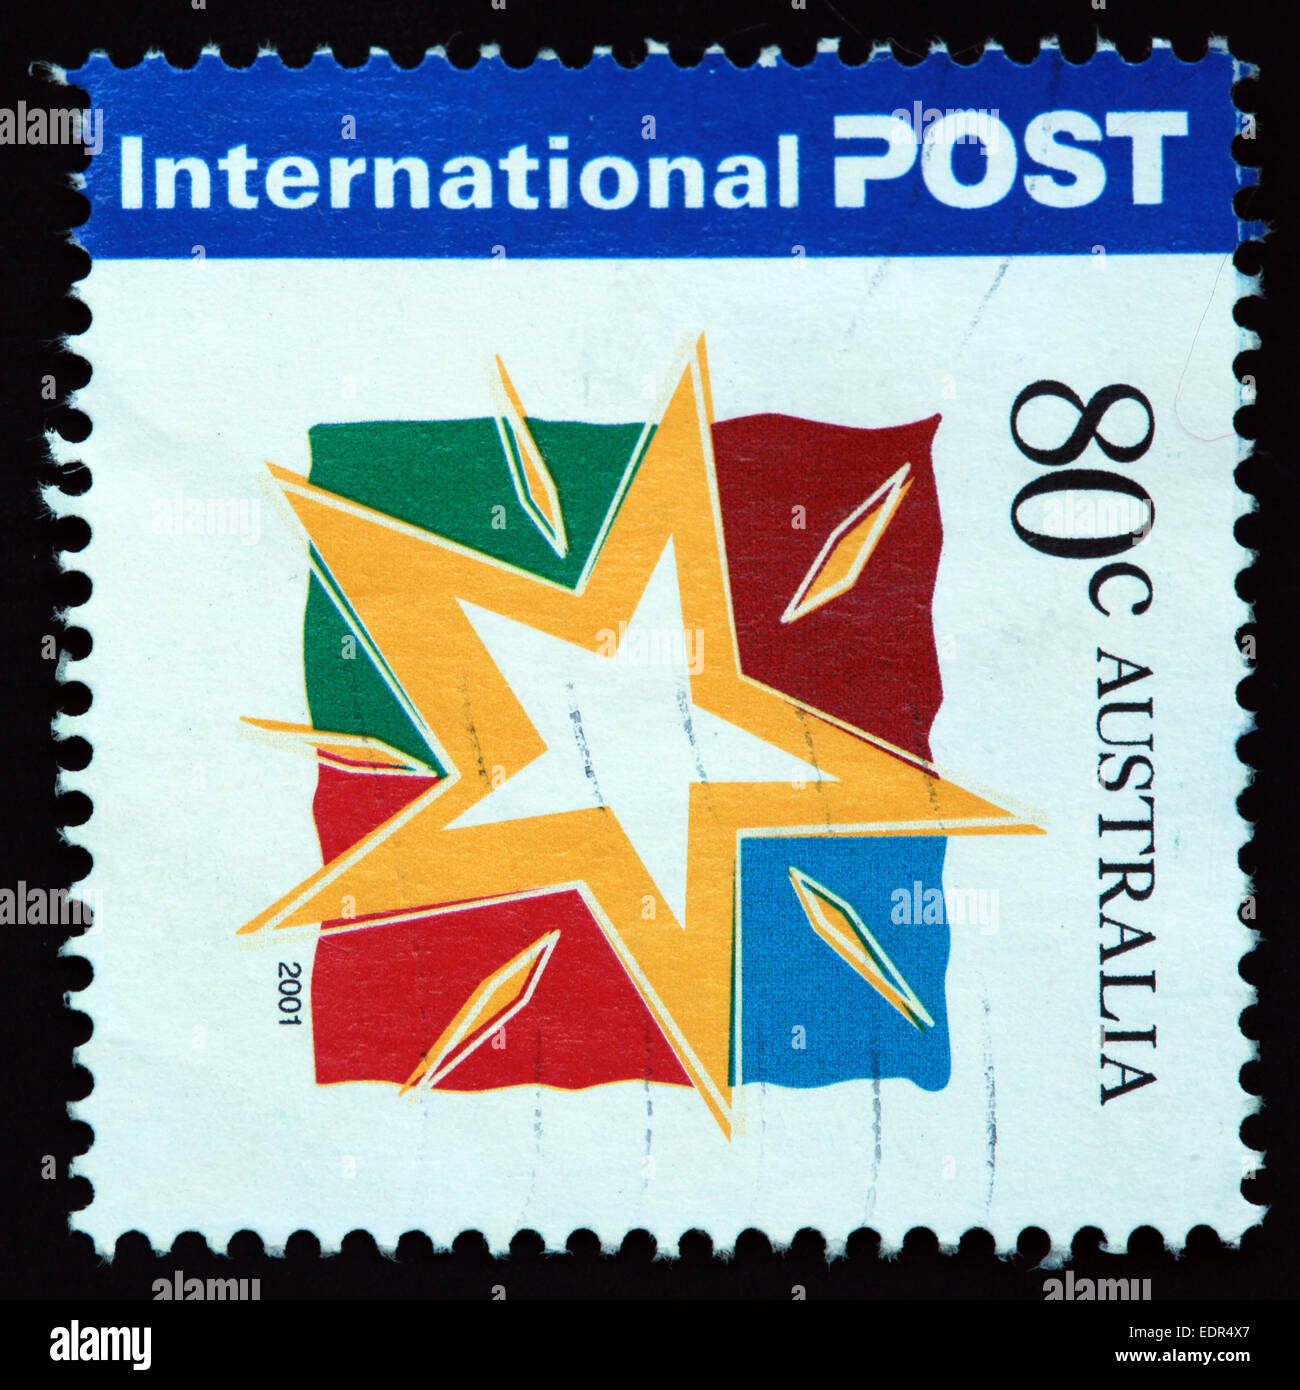 Used and postmarked Australia / Austrailian Stamp 2001 International Post 80c - Stock Image